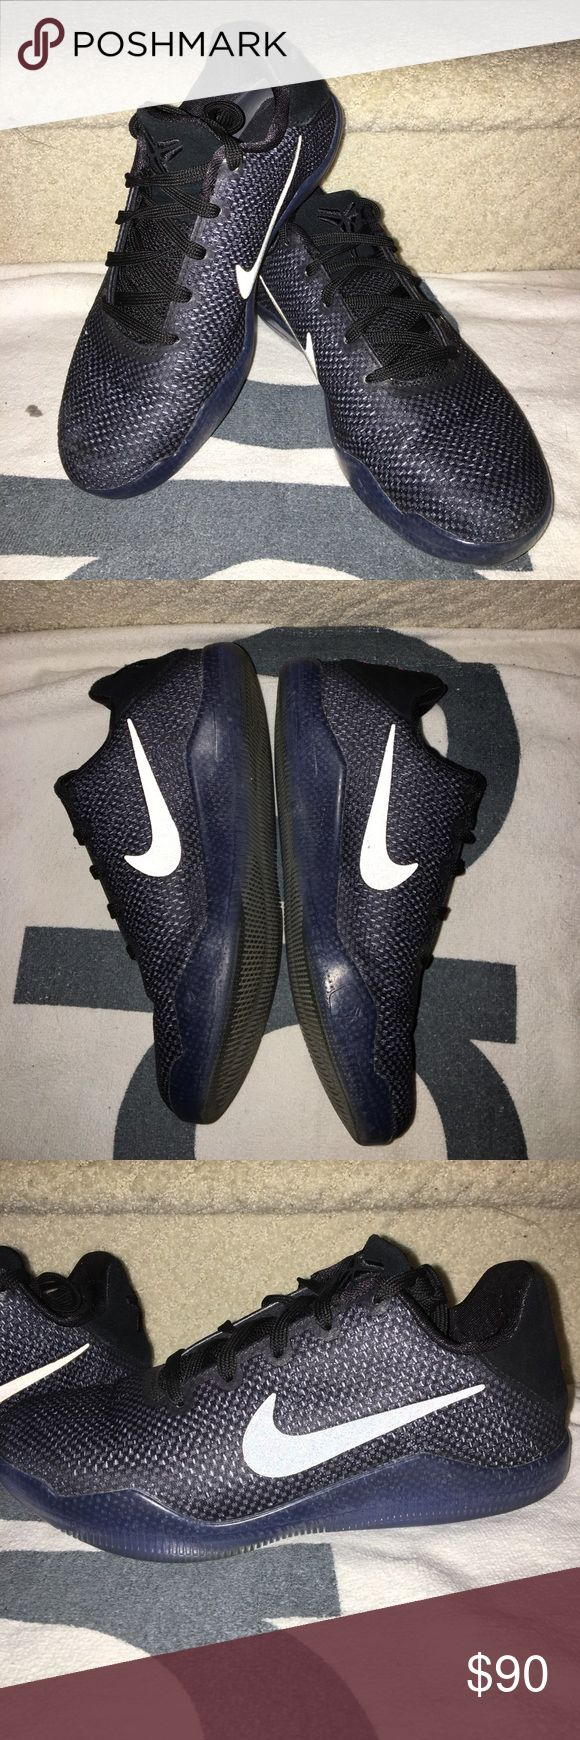 Kobe 11 Elite Low Black Space Youth basketball shoe size 4youth. Worn a few times but still great condition. I thought the size was good for me and I love this shoe, it's just too small for me. Nike Shoes Sneakers